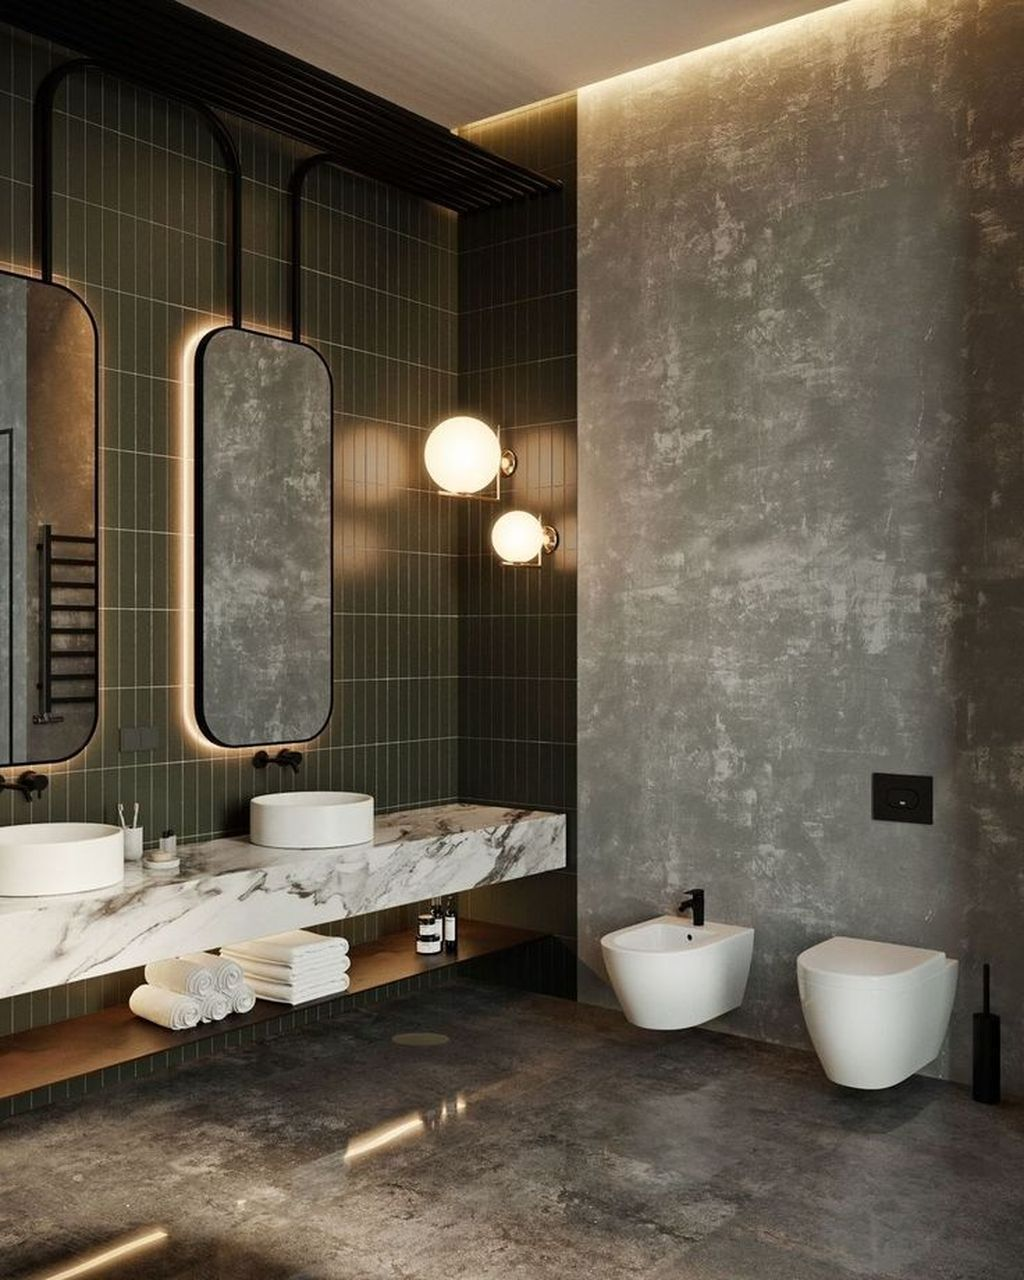 Stunning Industrial Bathroom Design Ideas 12